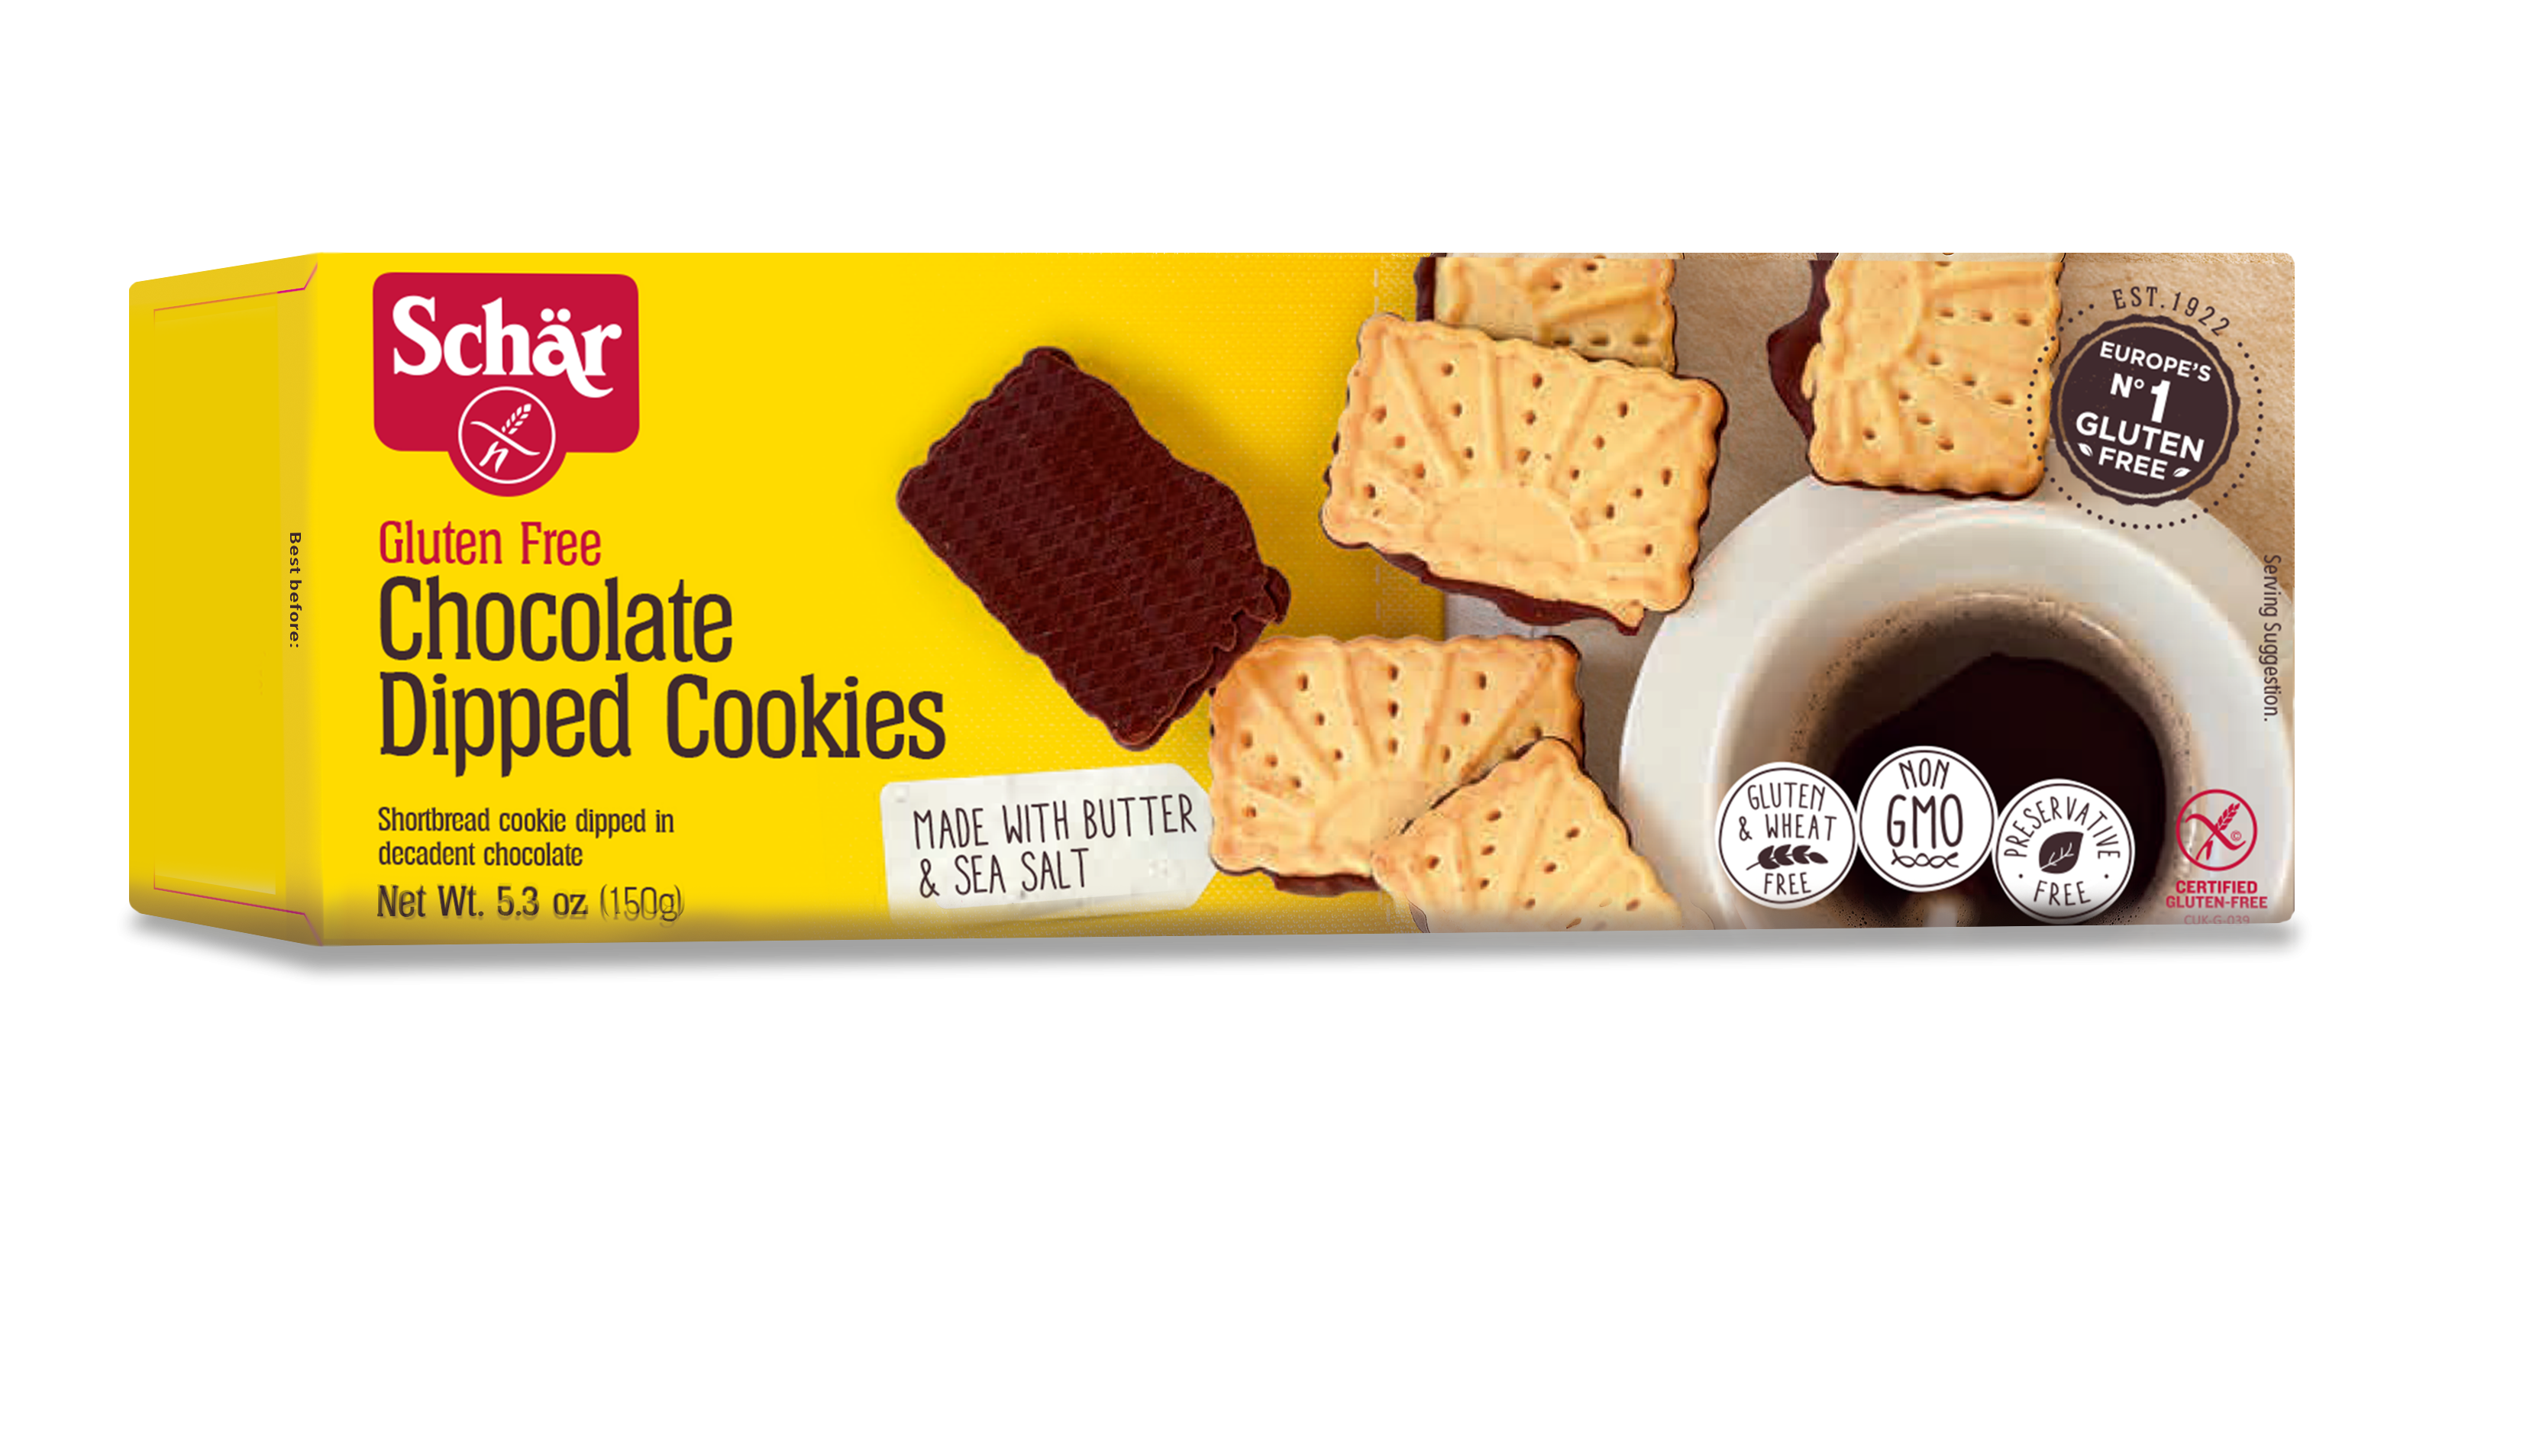 Schar Gluten Free Chocolate Dipped Cookies